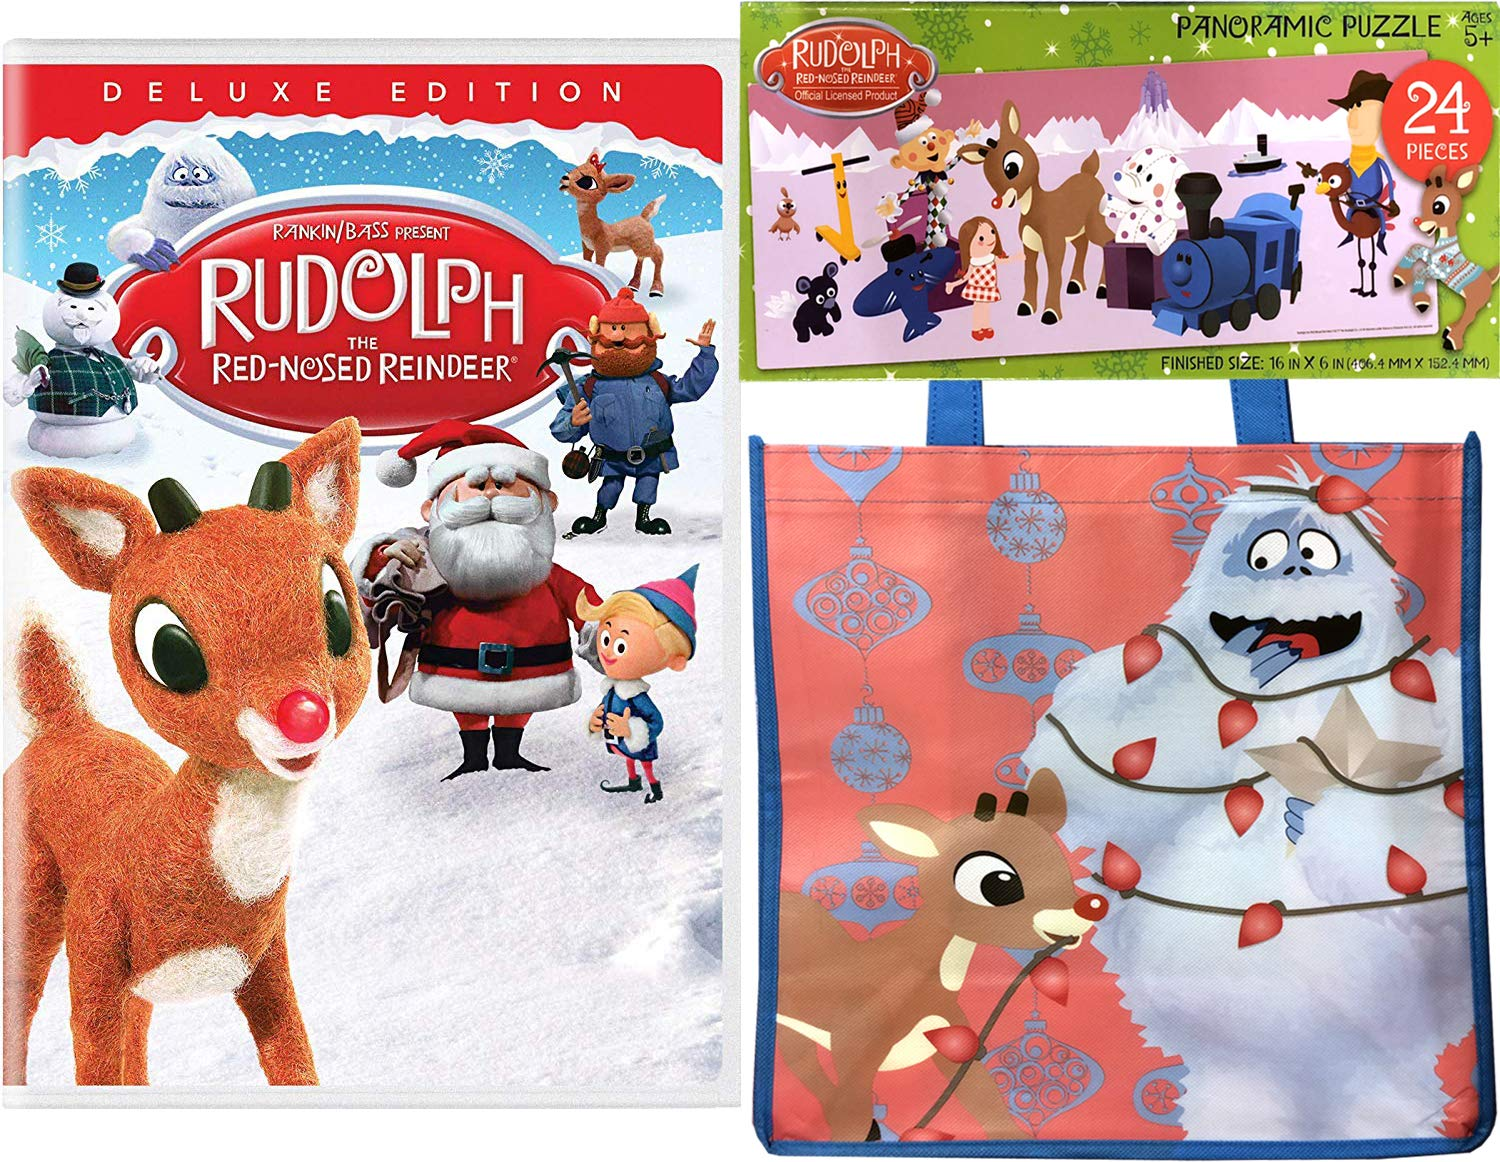 Reindeer Coloring Pages Stock Rudolph Misfit toys Coloring Pages ... | 1162x1500